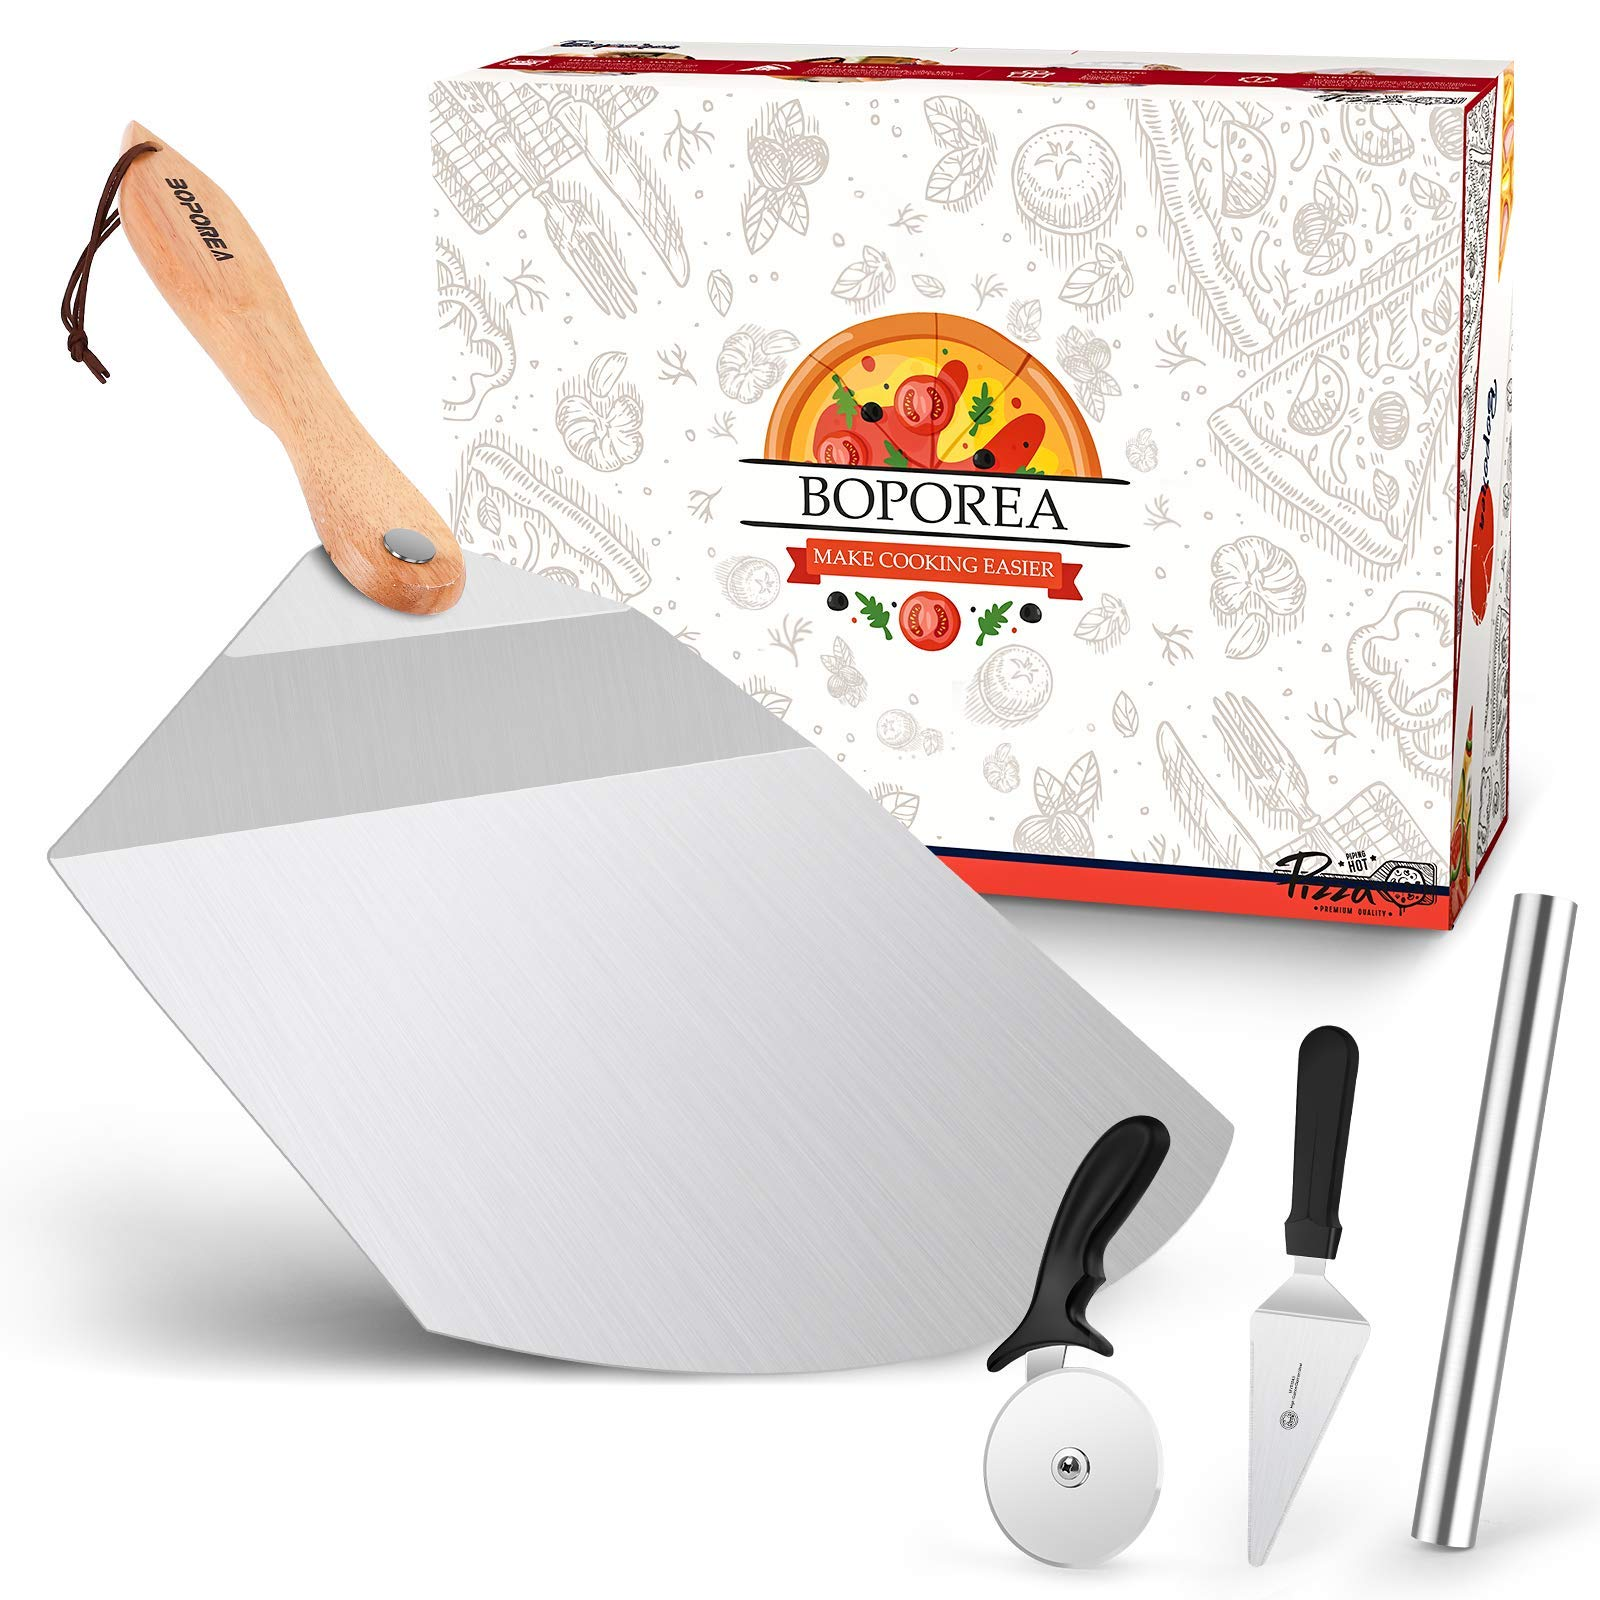 "Pizza Peels,BOPOREA 13.5"" x 14""Metal Pizza Paddle with Foldable Wood Handle,Pizza Shovel,Wheel Cutter,Rolling Pins,Pizza Spatula Pizza Oven Accessories,for Baking,Slicing Homemade,Bread,Pie,Pastry"